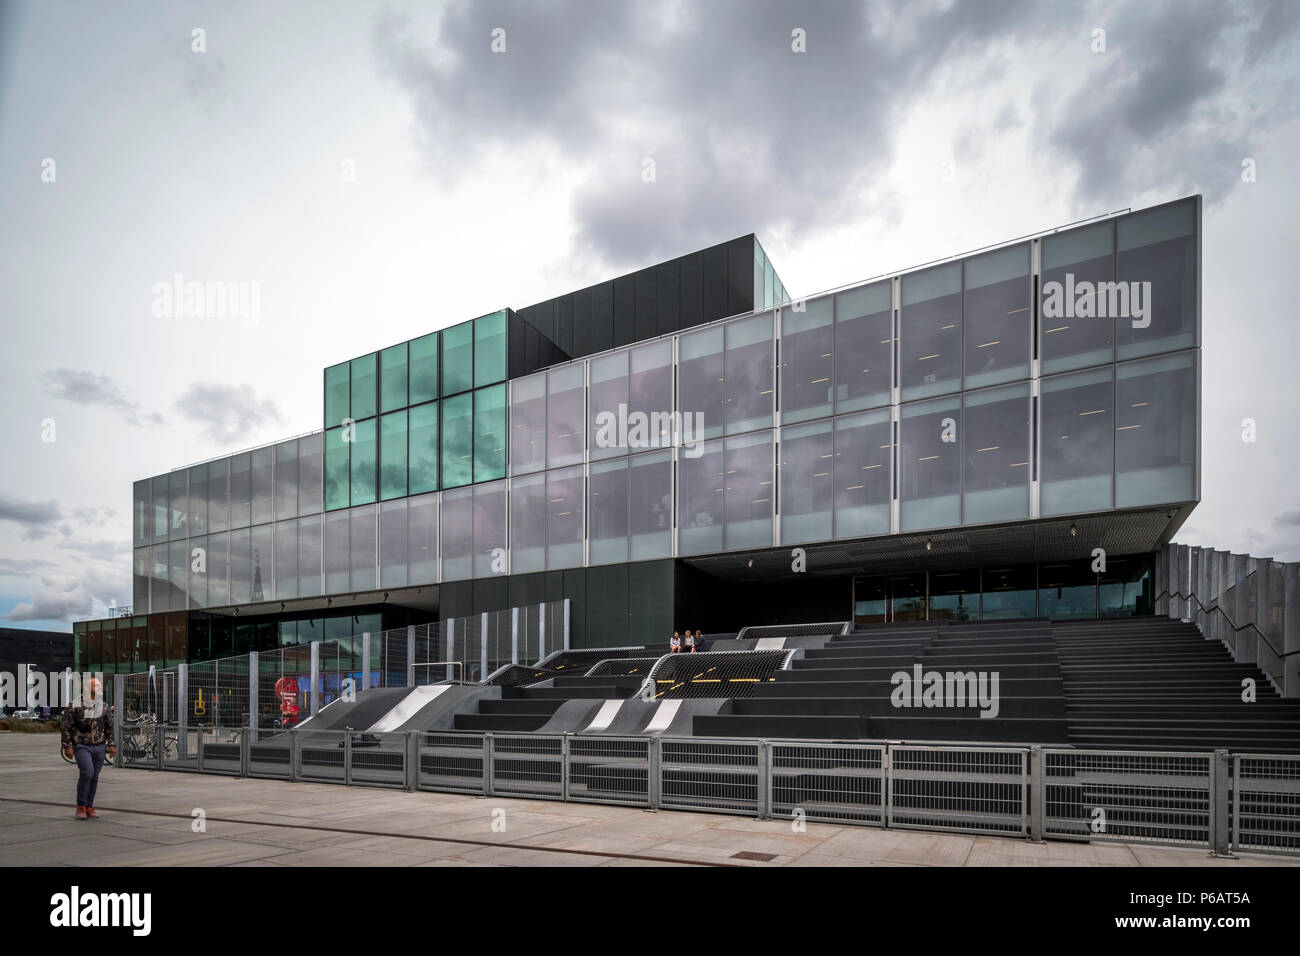 Copenhagen, Denmark - June 21, 2018. BLOX is a massive building housing a range of creative and cultural institutions on Copenhagen's harbour front. (Photo credit: Gonzales Photo - Kim M. Leland). - Stock Image